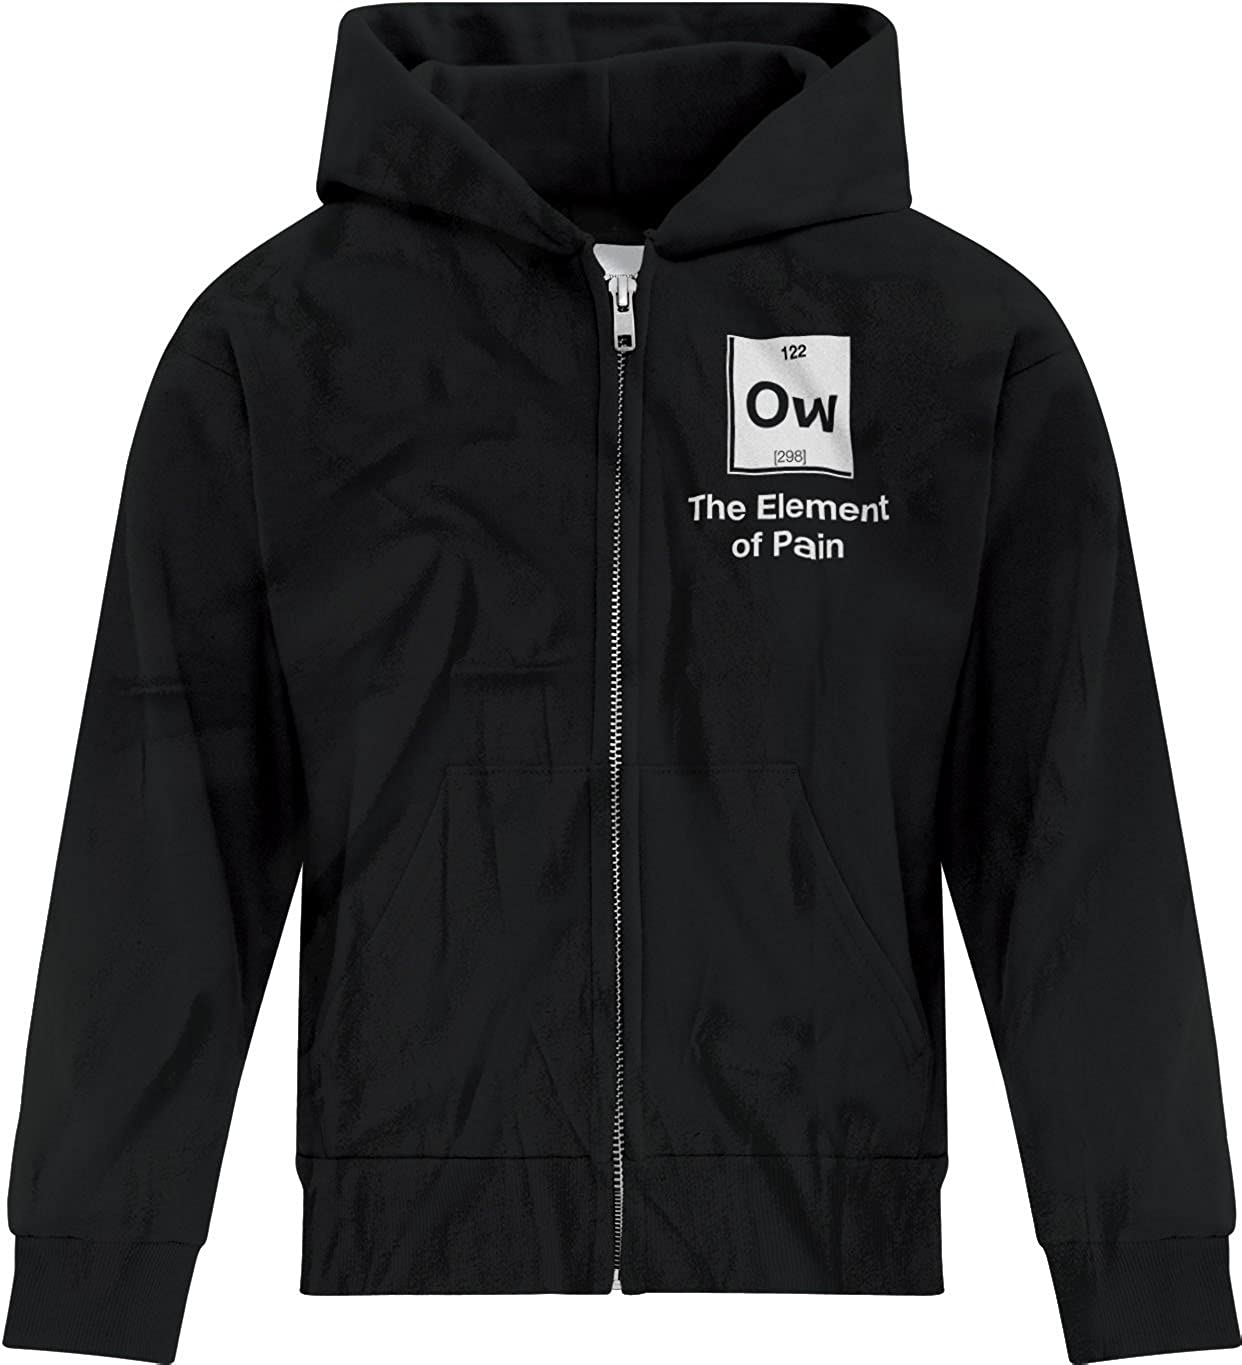 BSW Youth Boys No OW The Element of Pain Periodic Hurt Ouch Zip Hoodie